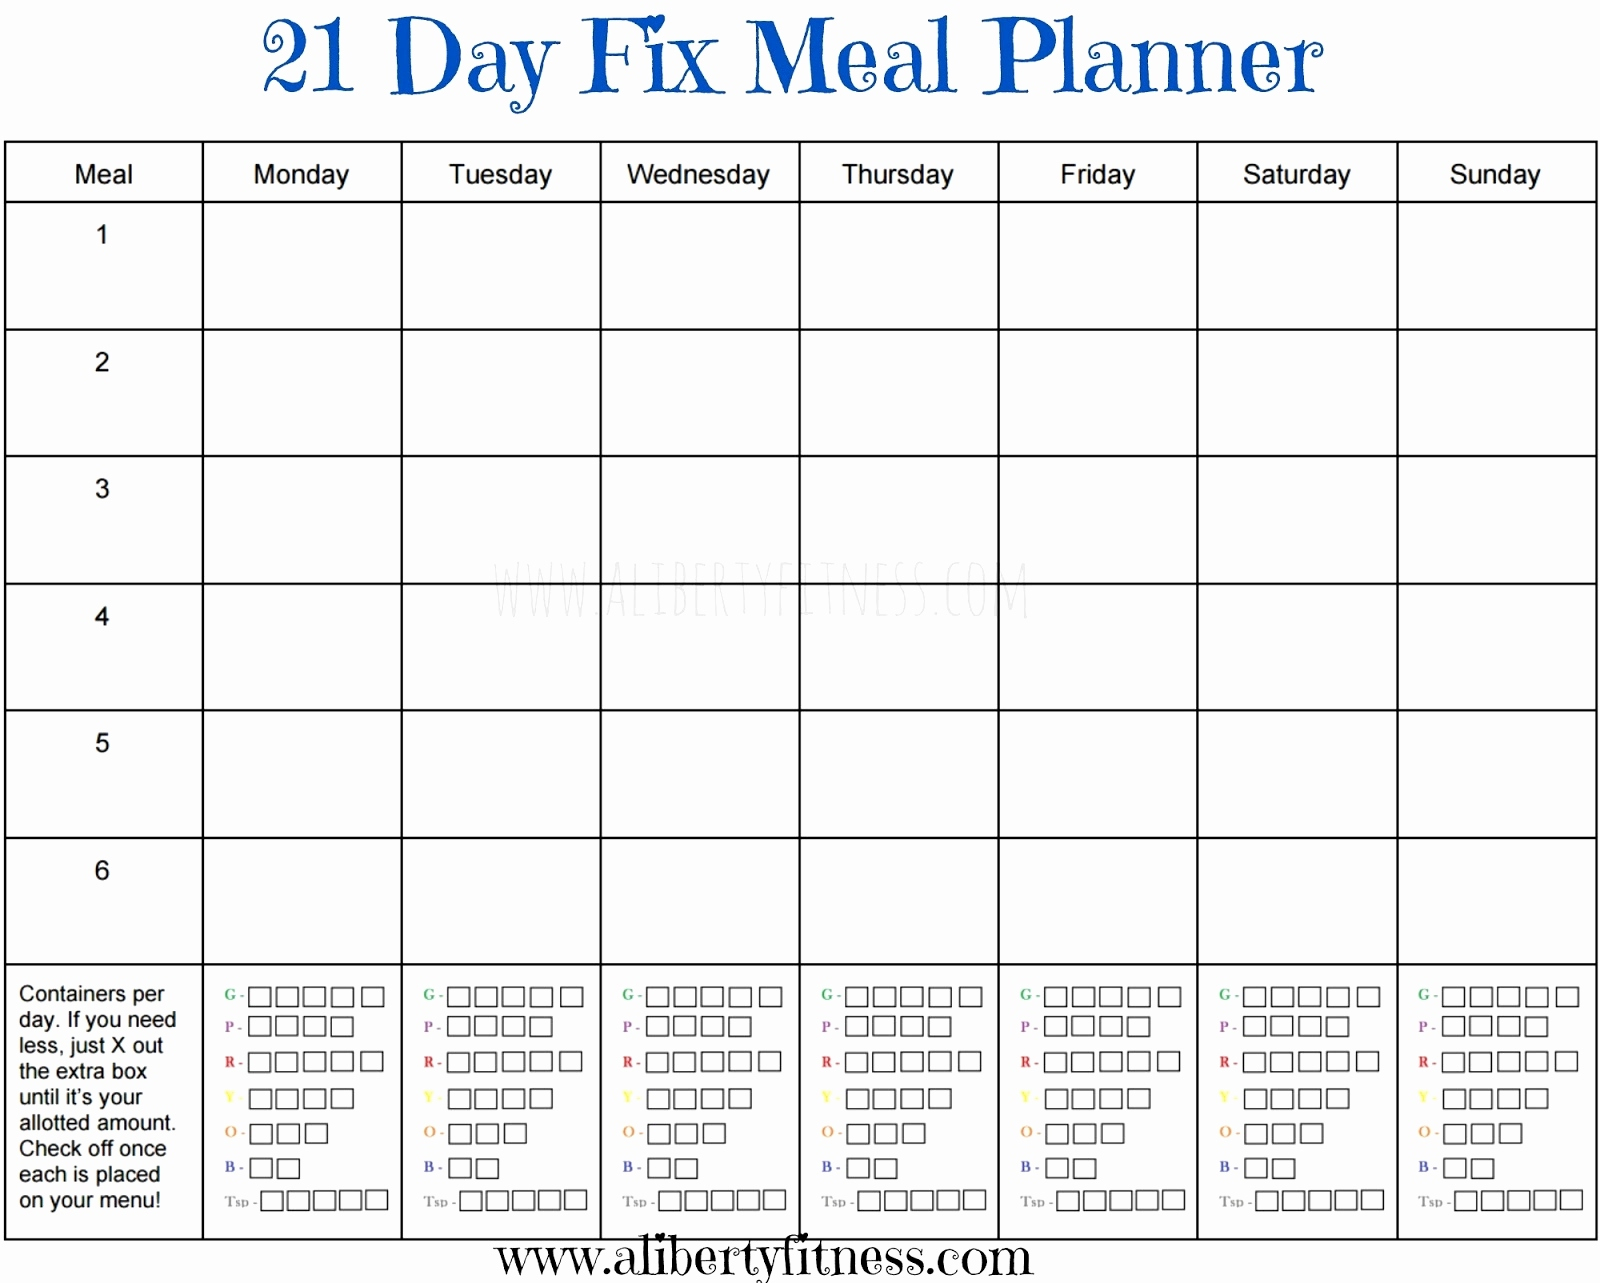 Keto Meal Plan Spreadsheet With Diabetic Diet Plan Printable Diabetes Meal Worksheet Menu Planning